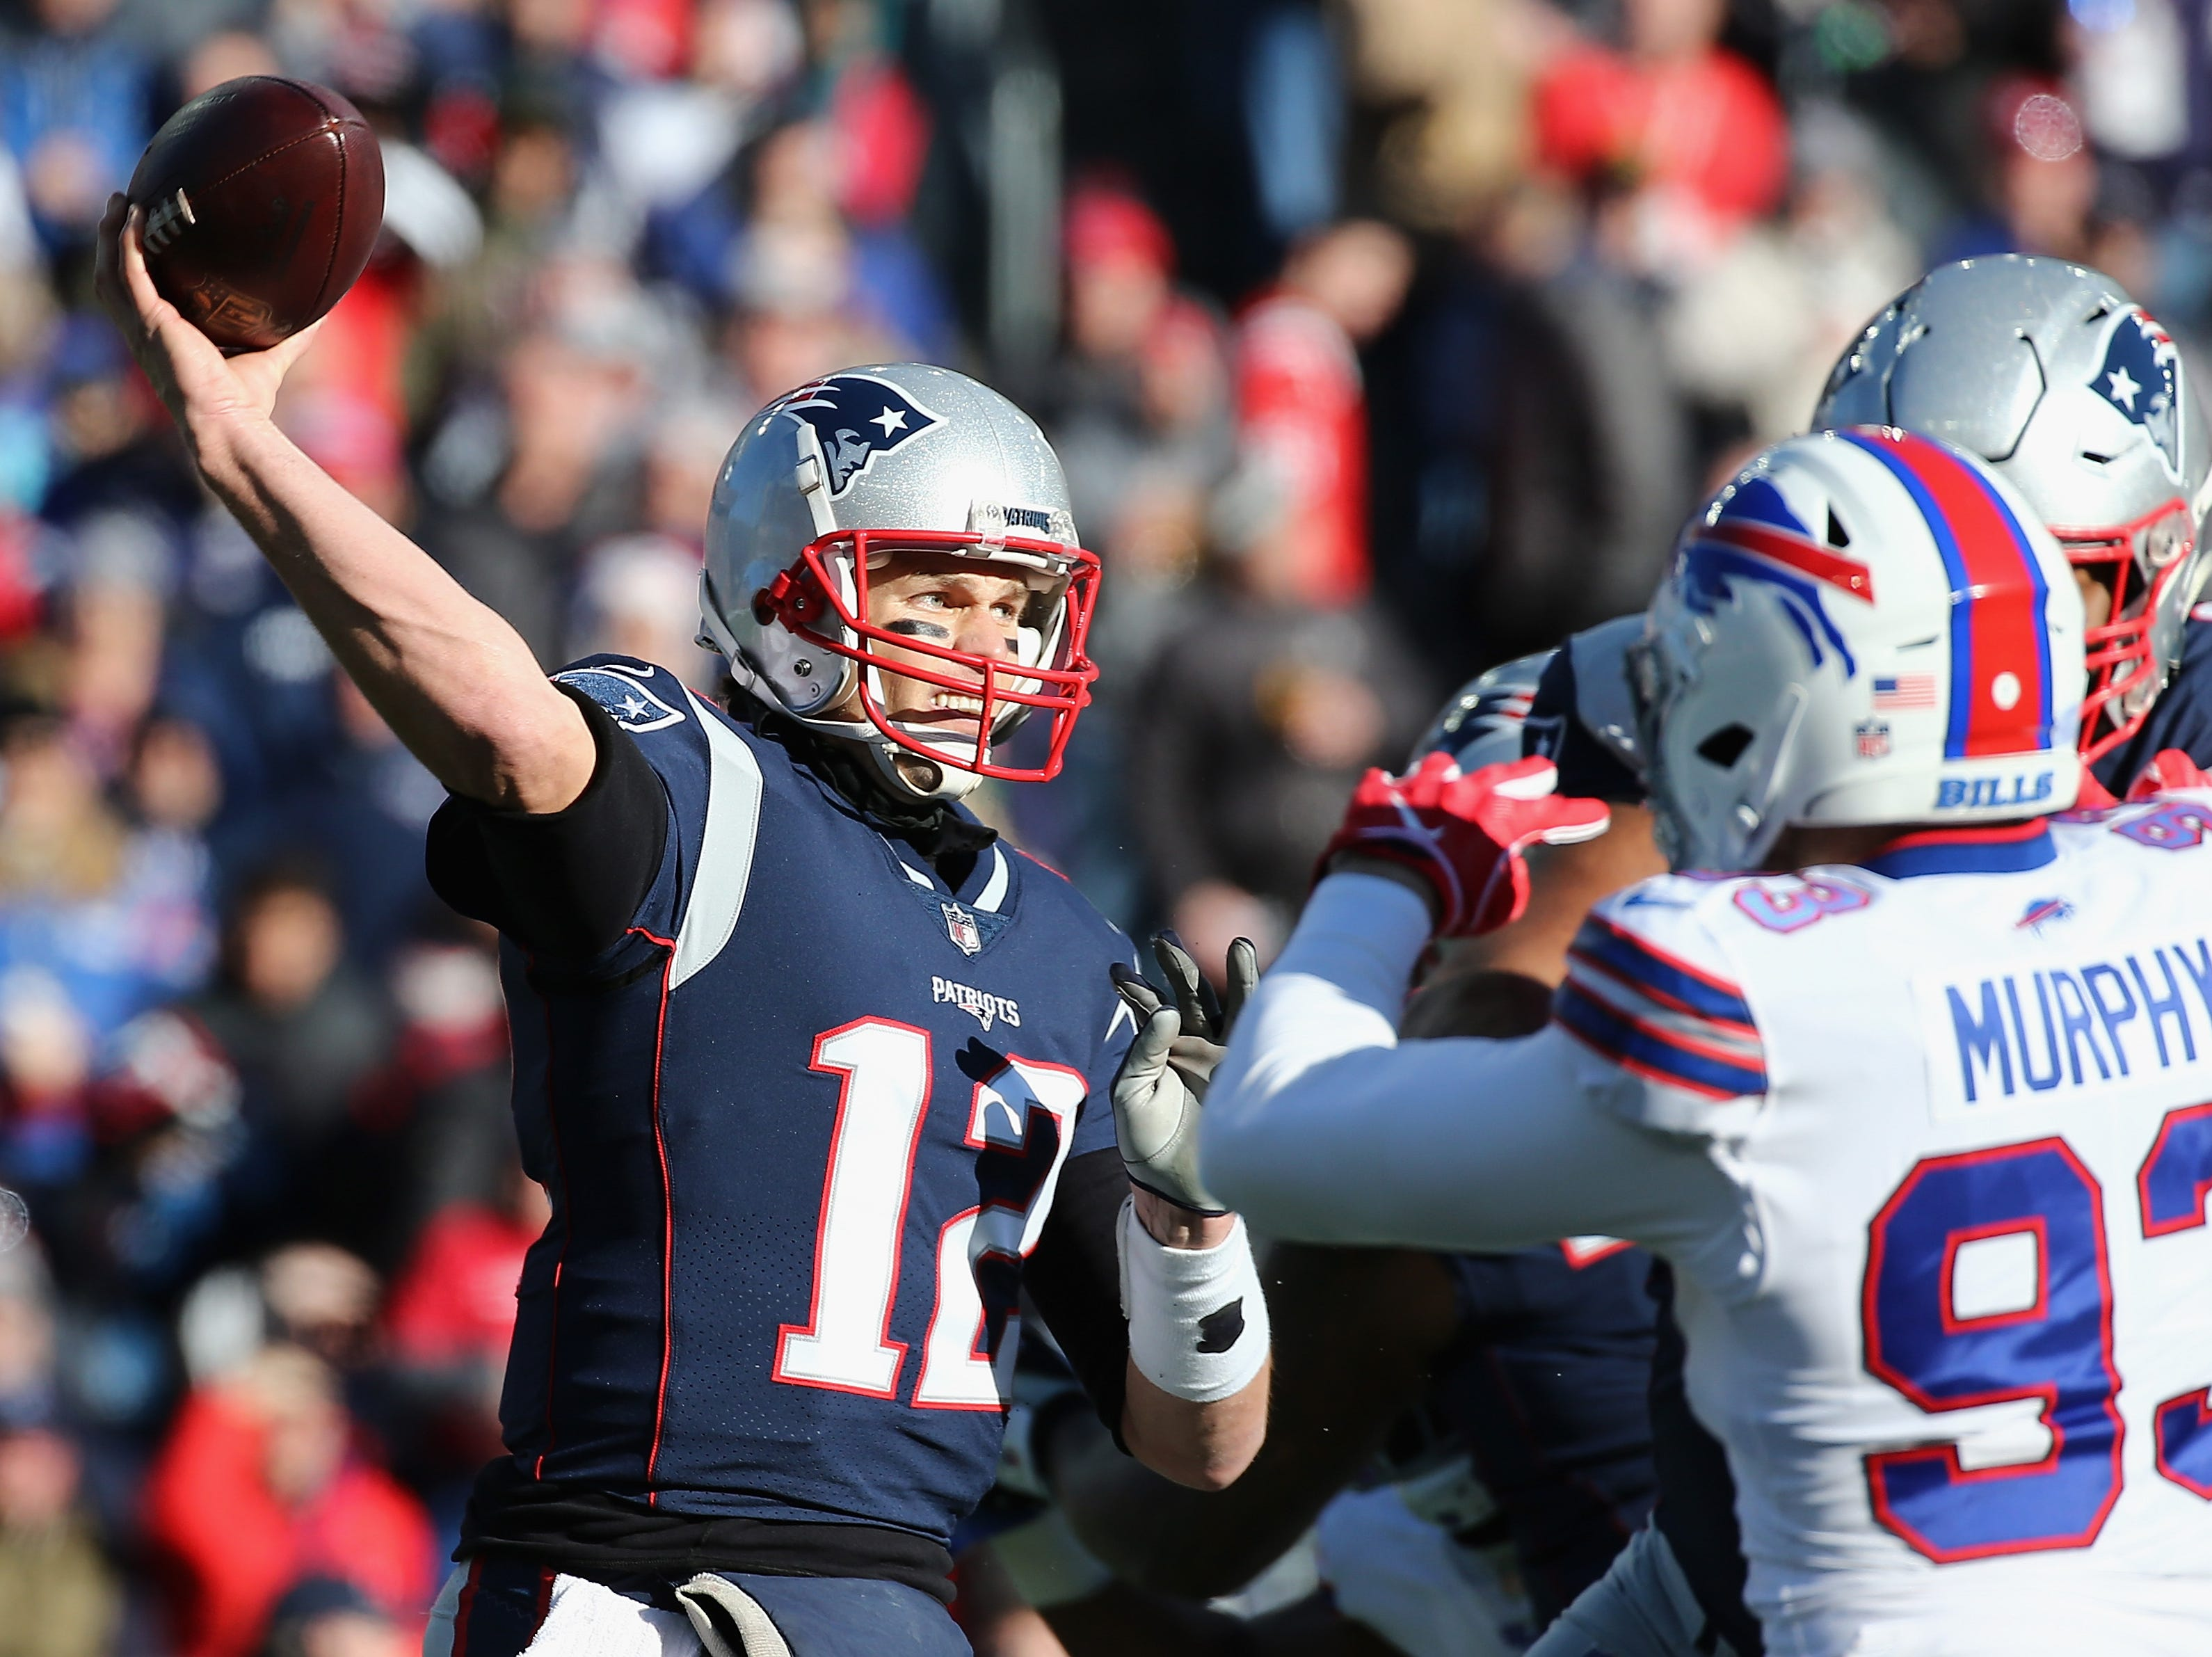 FOXBOROUGH, MA - DECEMBER 23:  Tom Brady #12 of the New England Patriots throws a pass during the first half against the Buffalo Bills at Gillette Stadium on December 23, 2018 in Foxborough, Massachusetts.  (Photo by Jim Rogash/Getty Images)